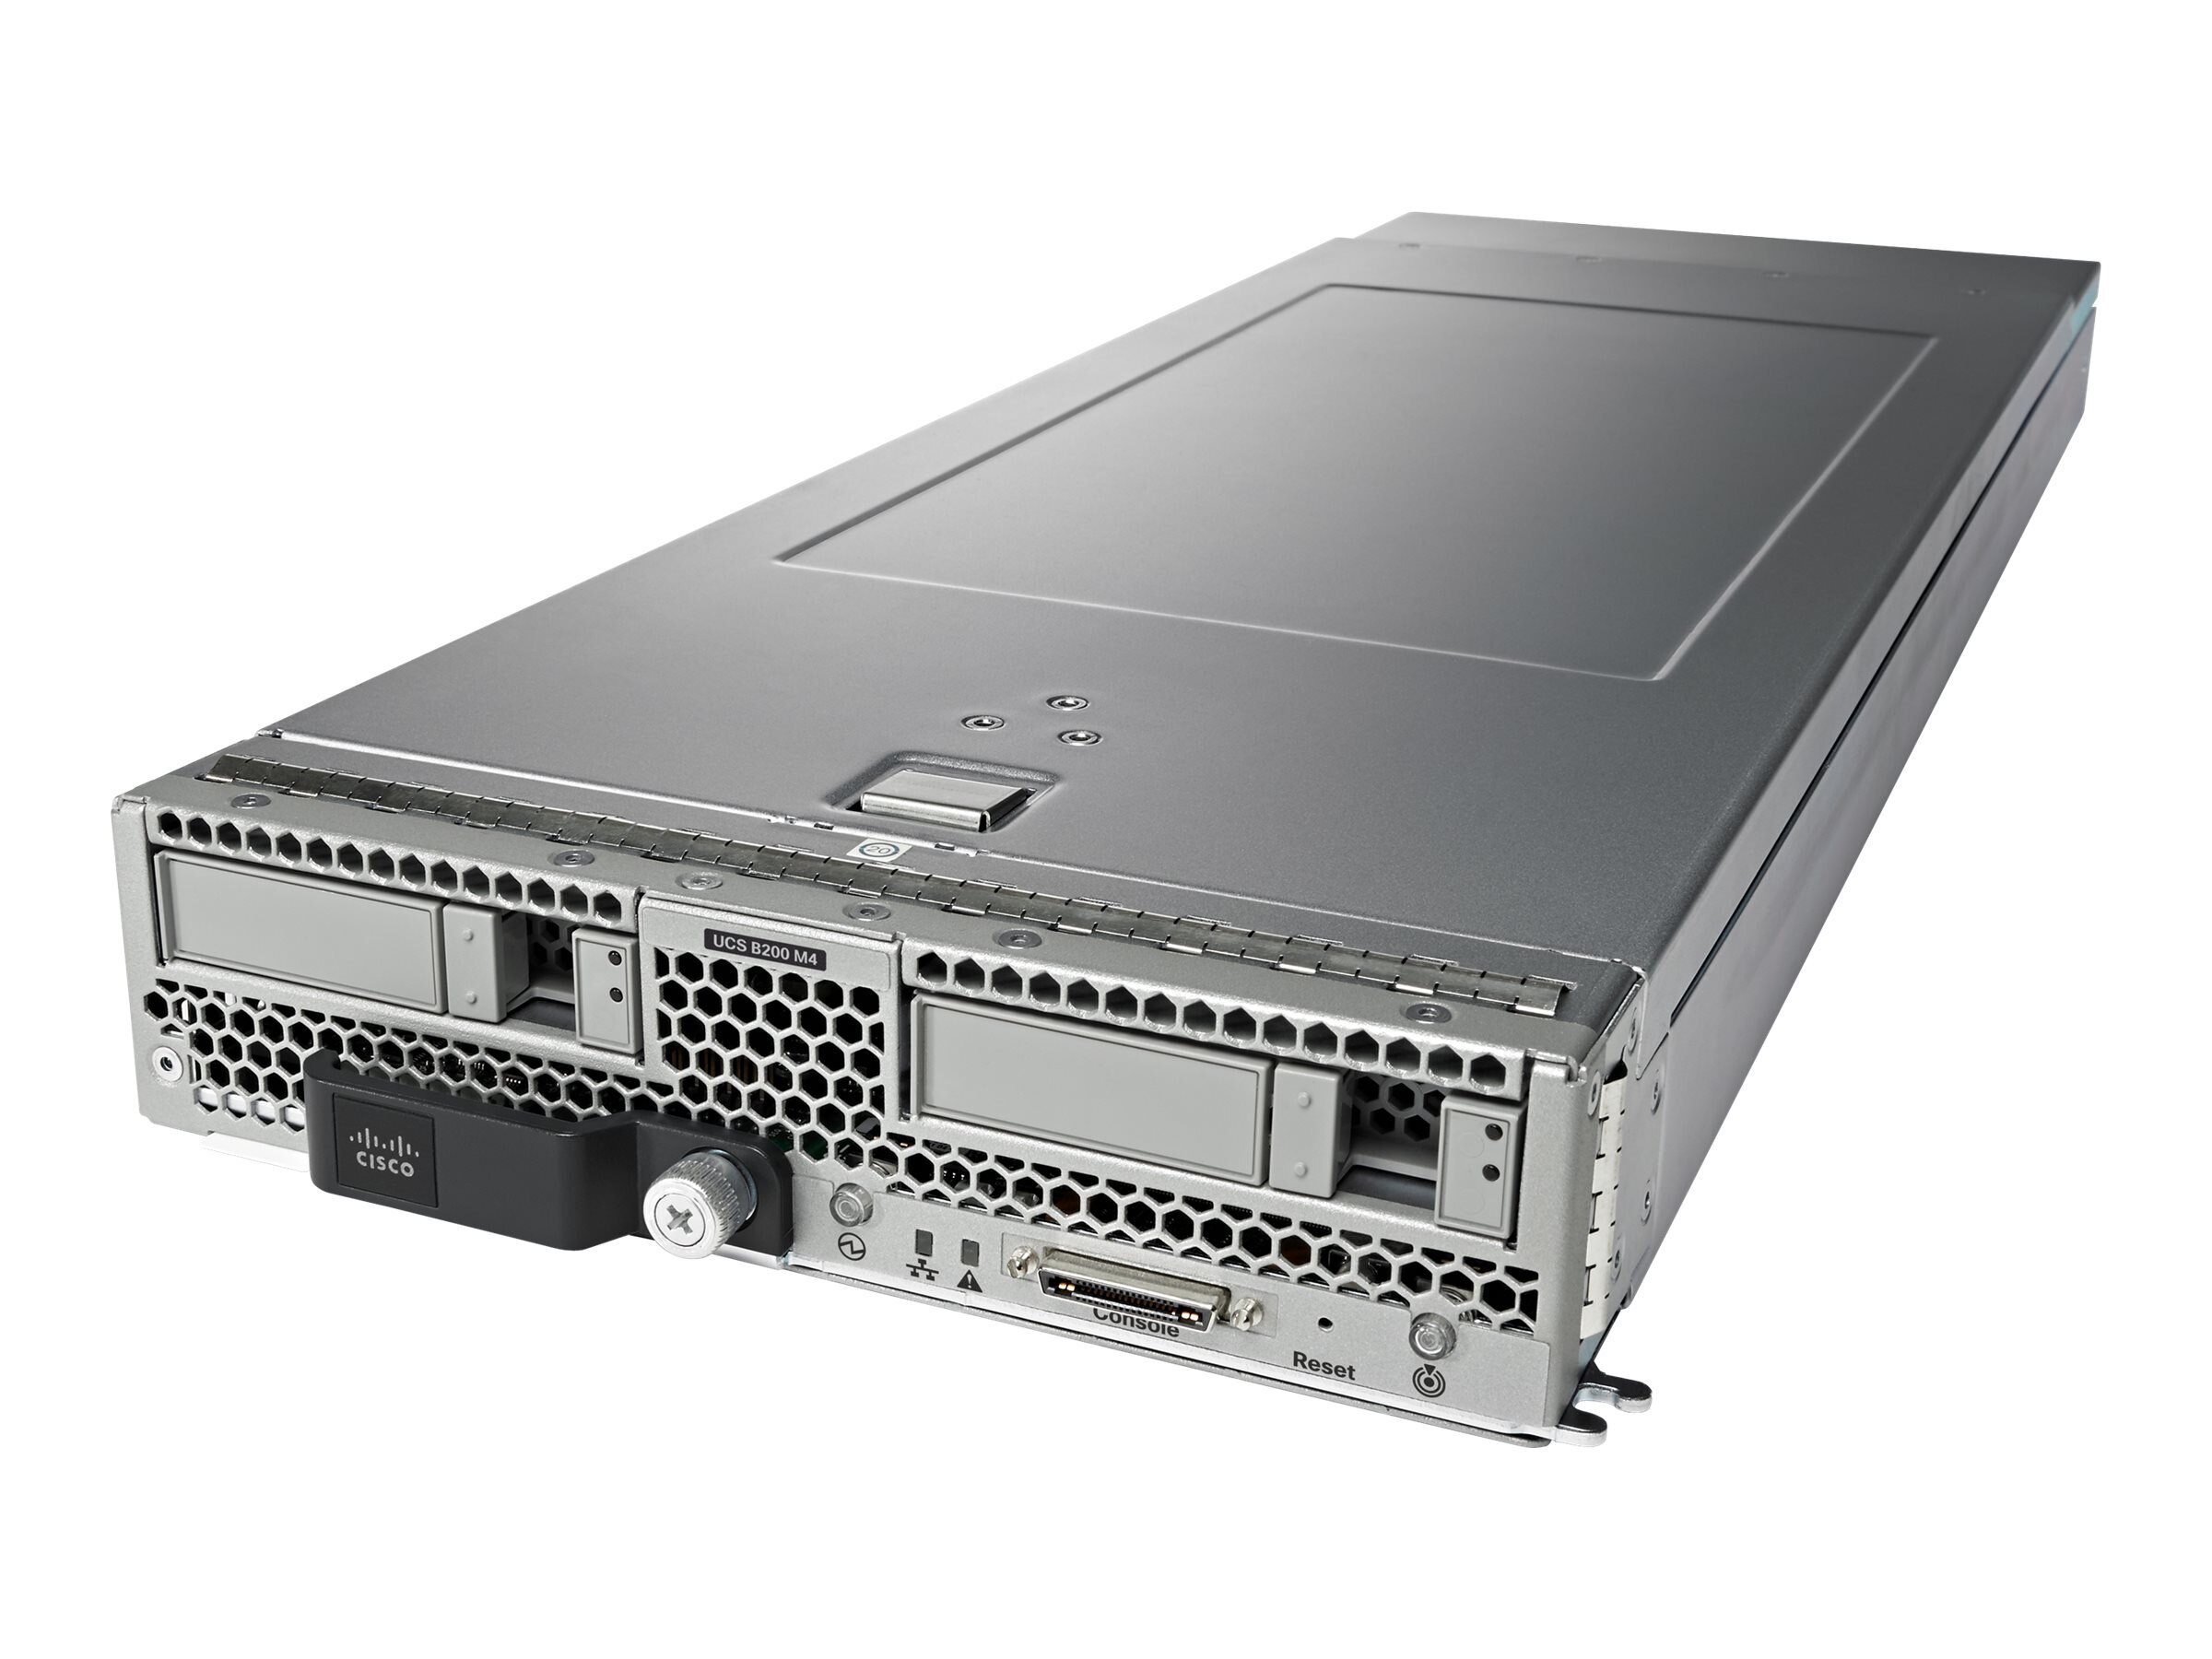 Cisco UCS SP8 B200 M4 Performance Plus with (2x)Xeon E5-2698 v3, UCS-EZ8-B200M4-PP, 17914925, Servers - Blade